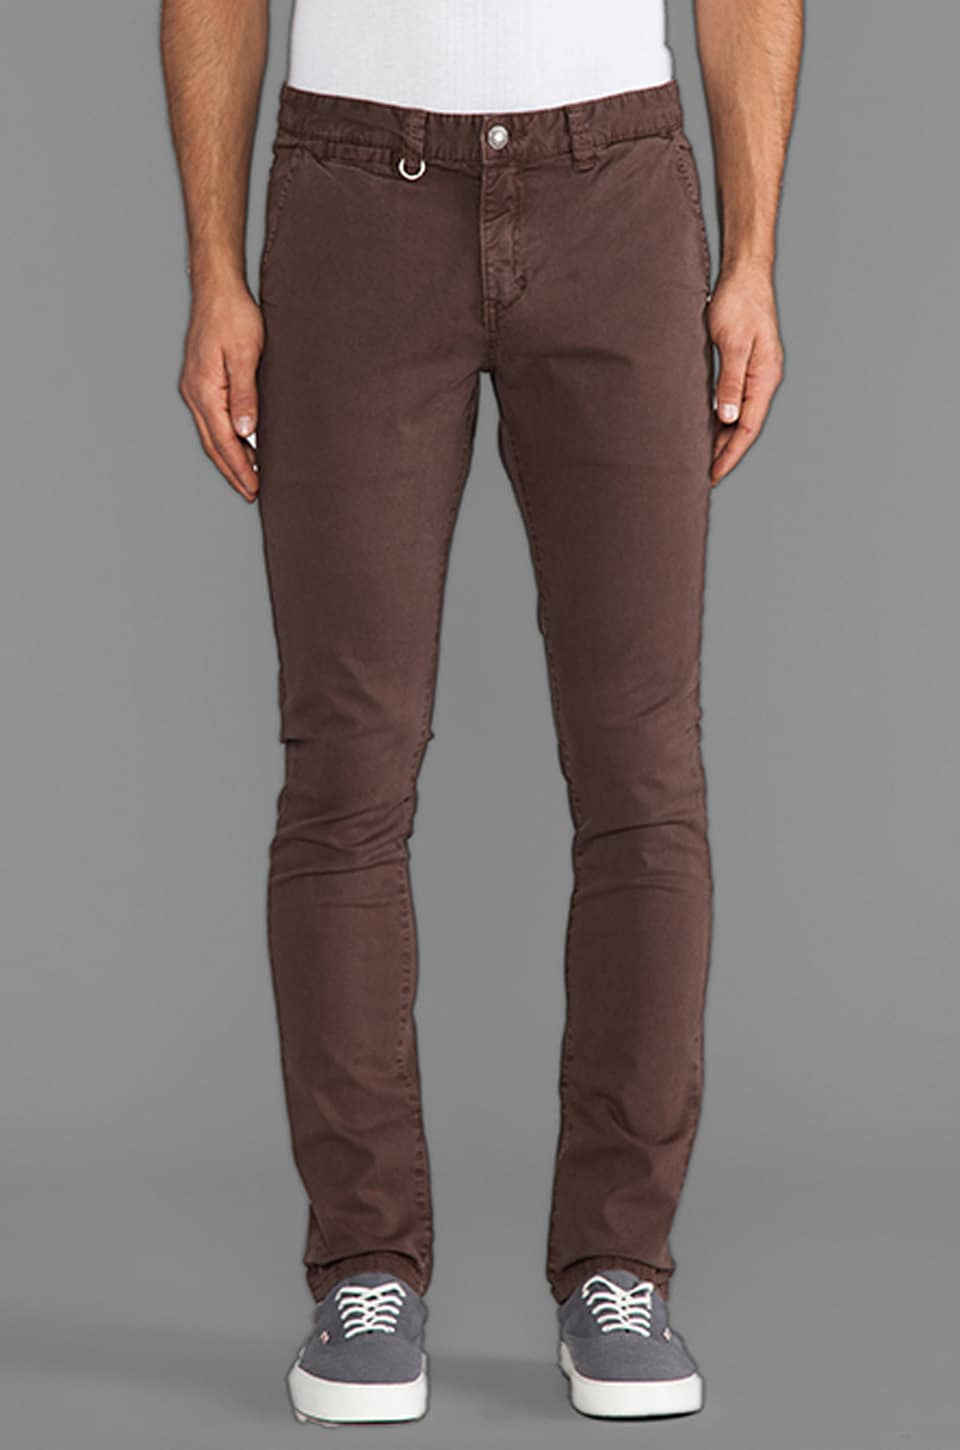 NEUW Slim Chino in Brown